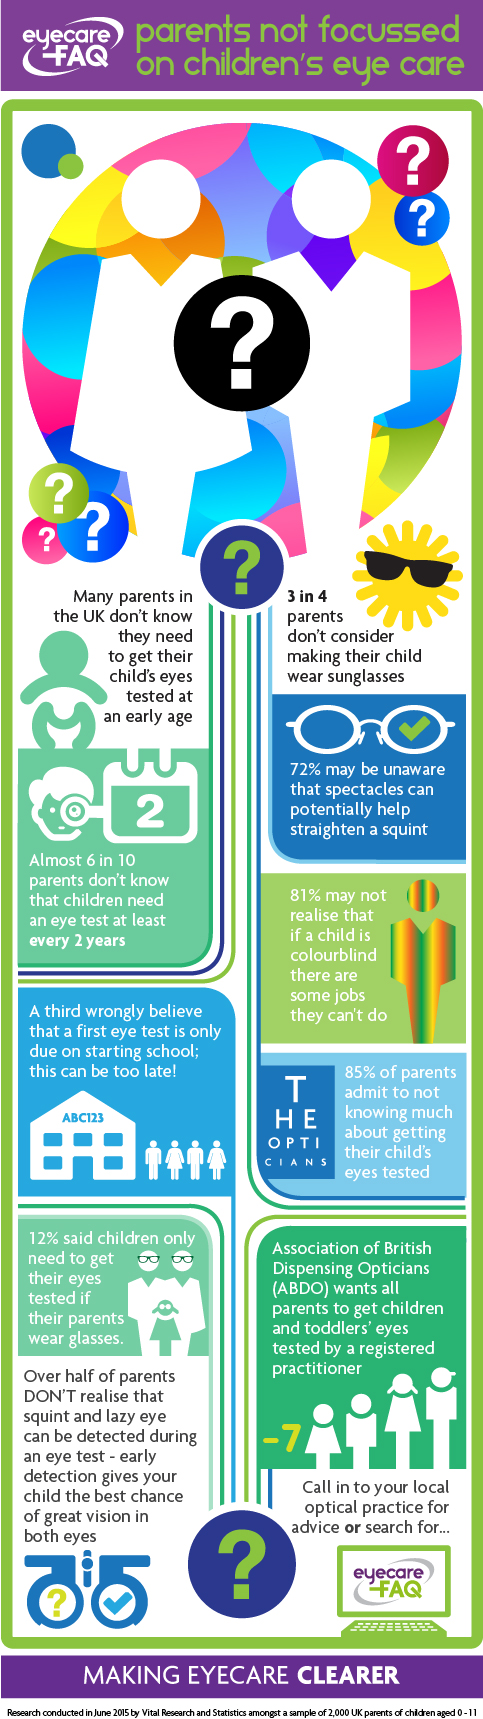 Parents not focussed on children's eyecare, new survey reveals